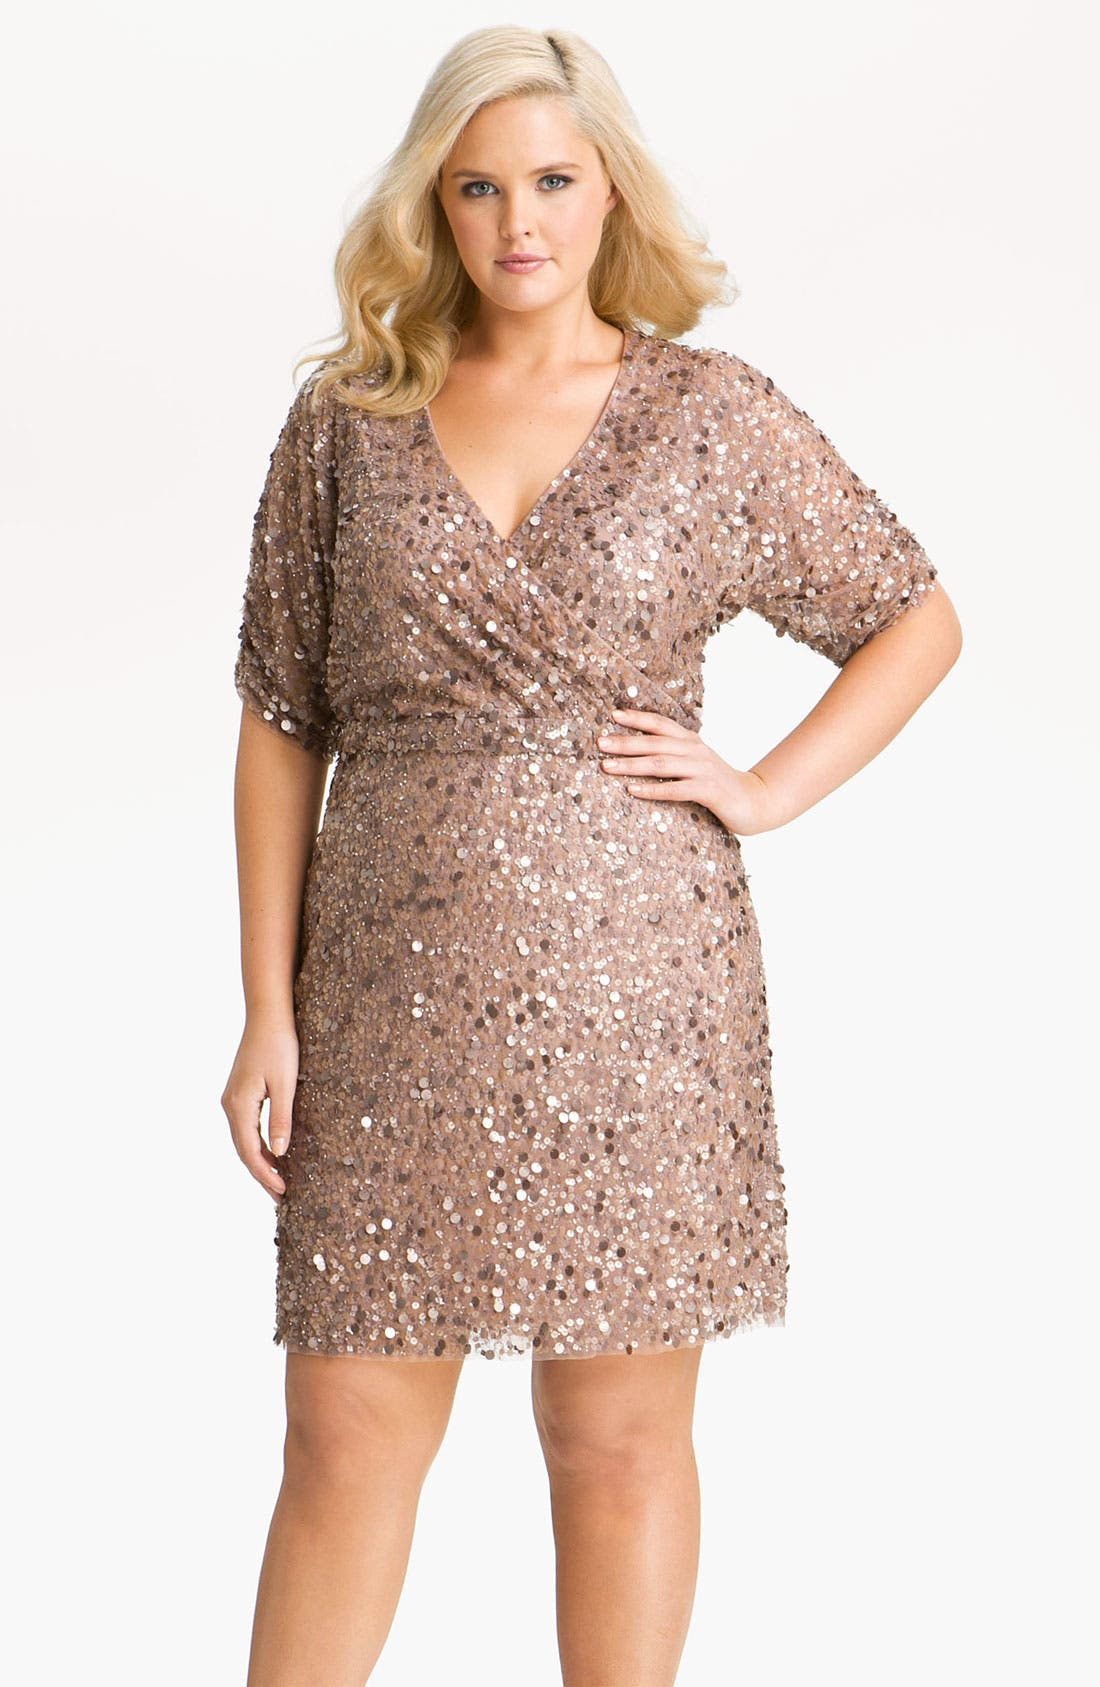 Alternate Image 1 Selected - Aidan Mattox Sequin Surplice Mesh Dress (Plus)